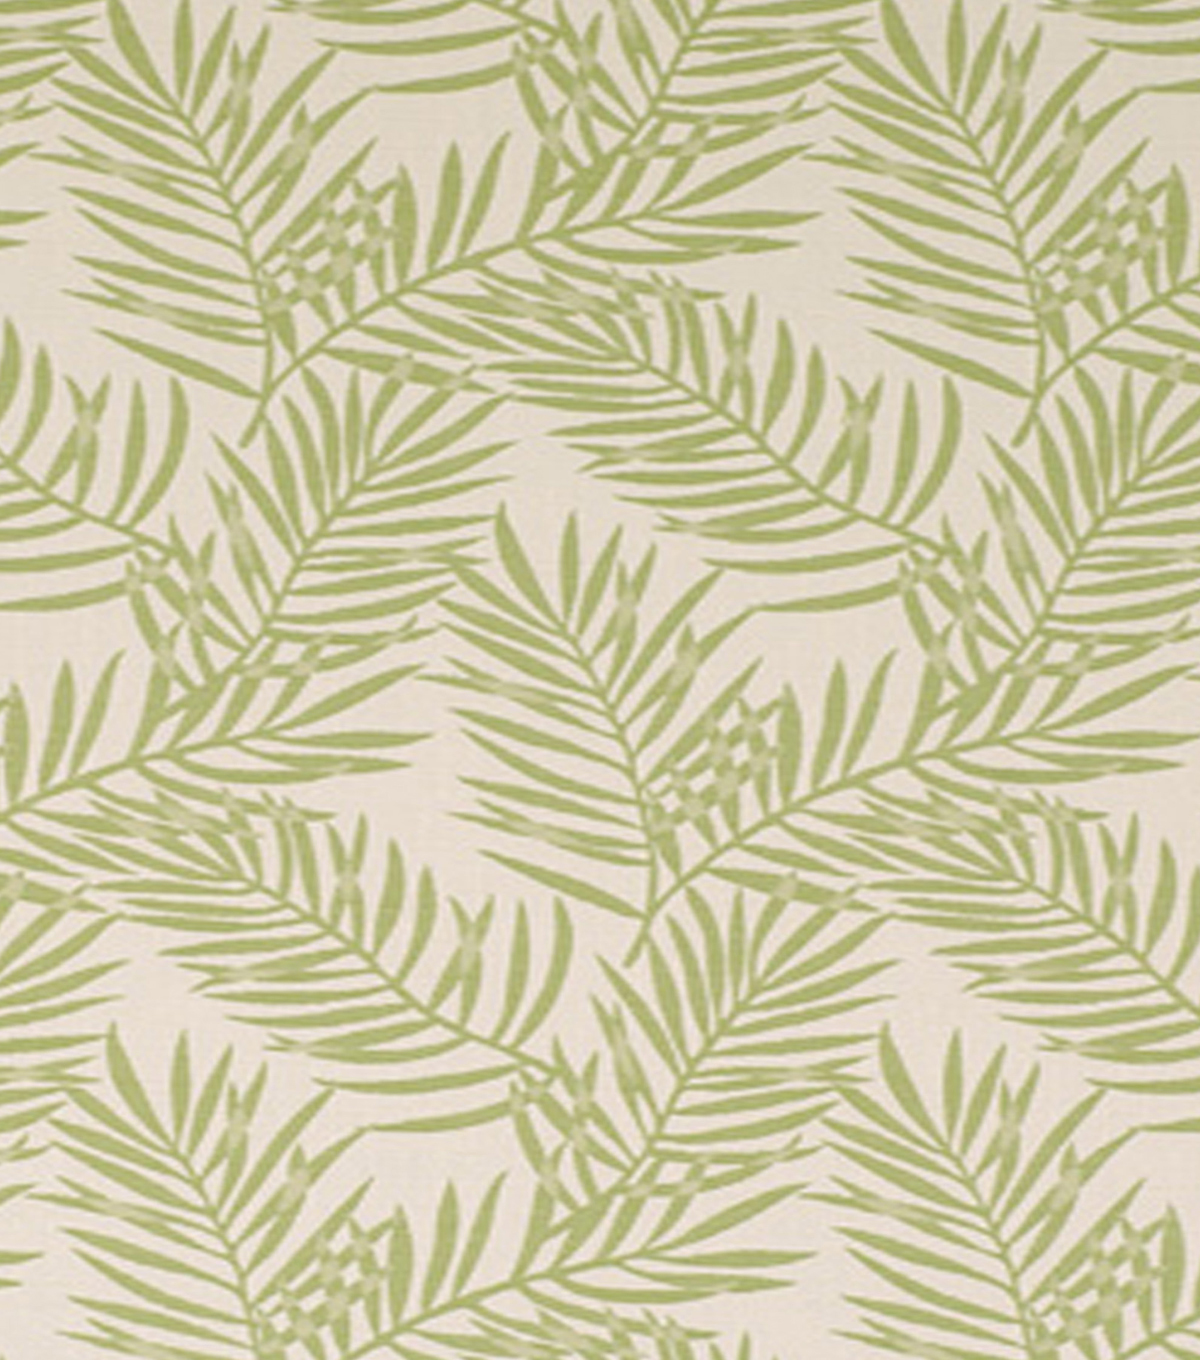 Home Decor 8\u0022x8\u0022 Fabric Swatch-Outdoor FabricMorro Bay Palm Green